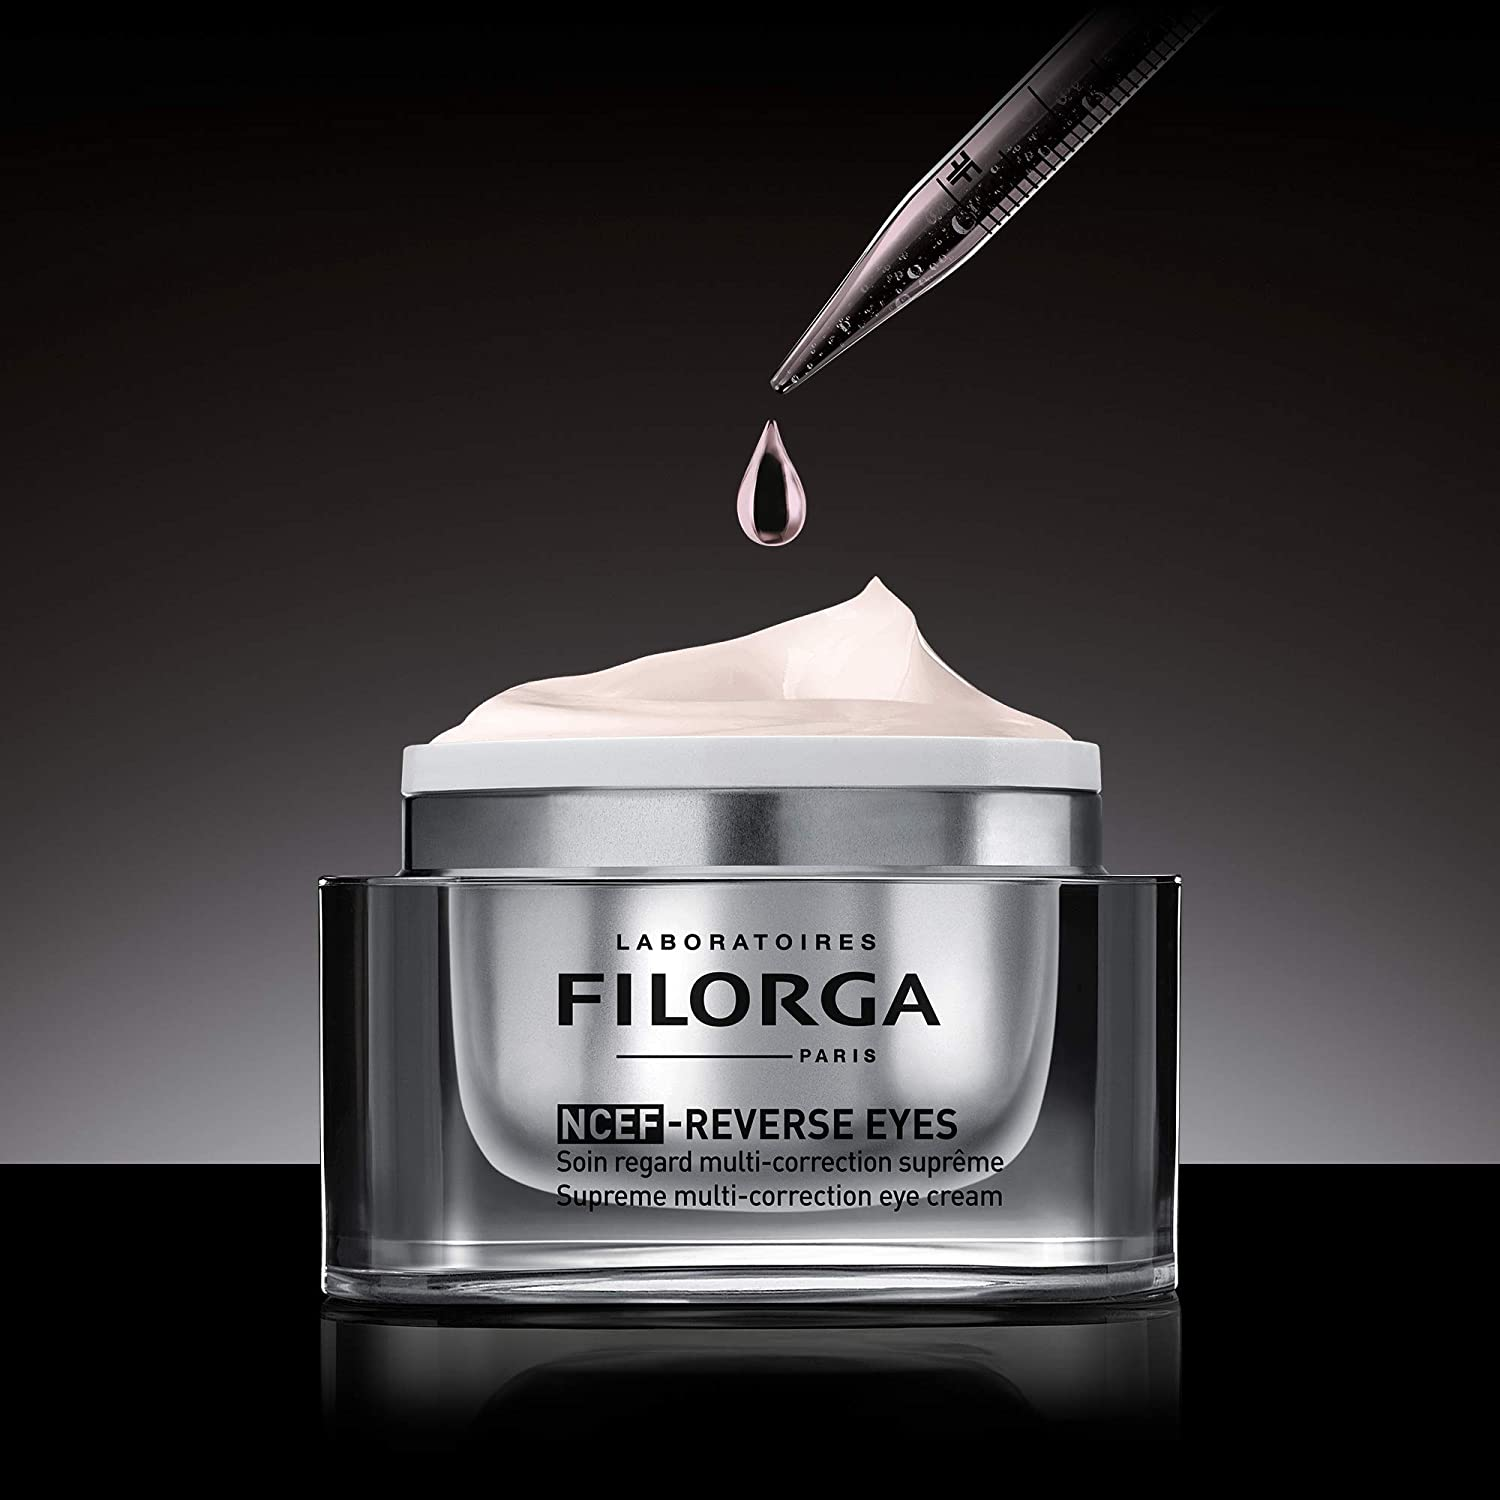 Amazon.com: Laboratoires Filorga Paris NCEF-Reverse Eyes Supreme  Multi-Correction Anti Aging Eye Cream, 0.5 Fl Oz: Premium Beauty